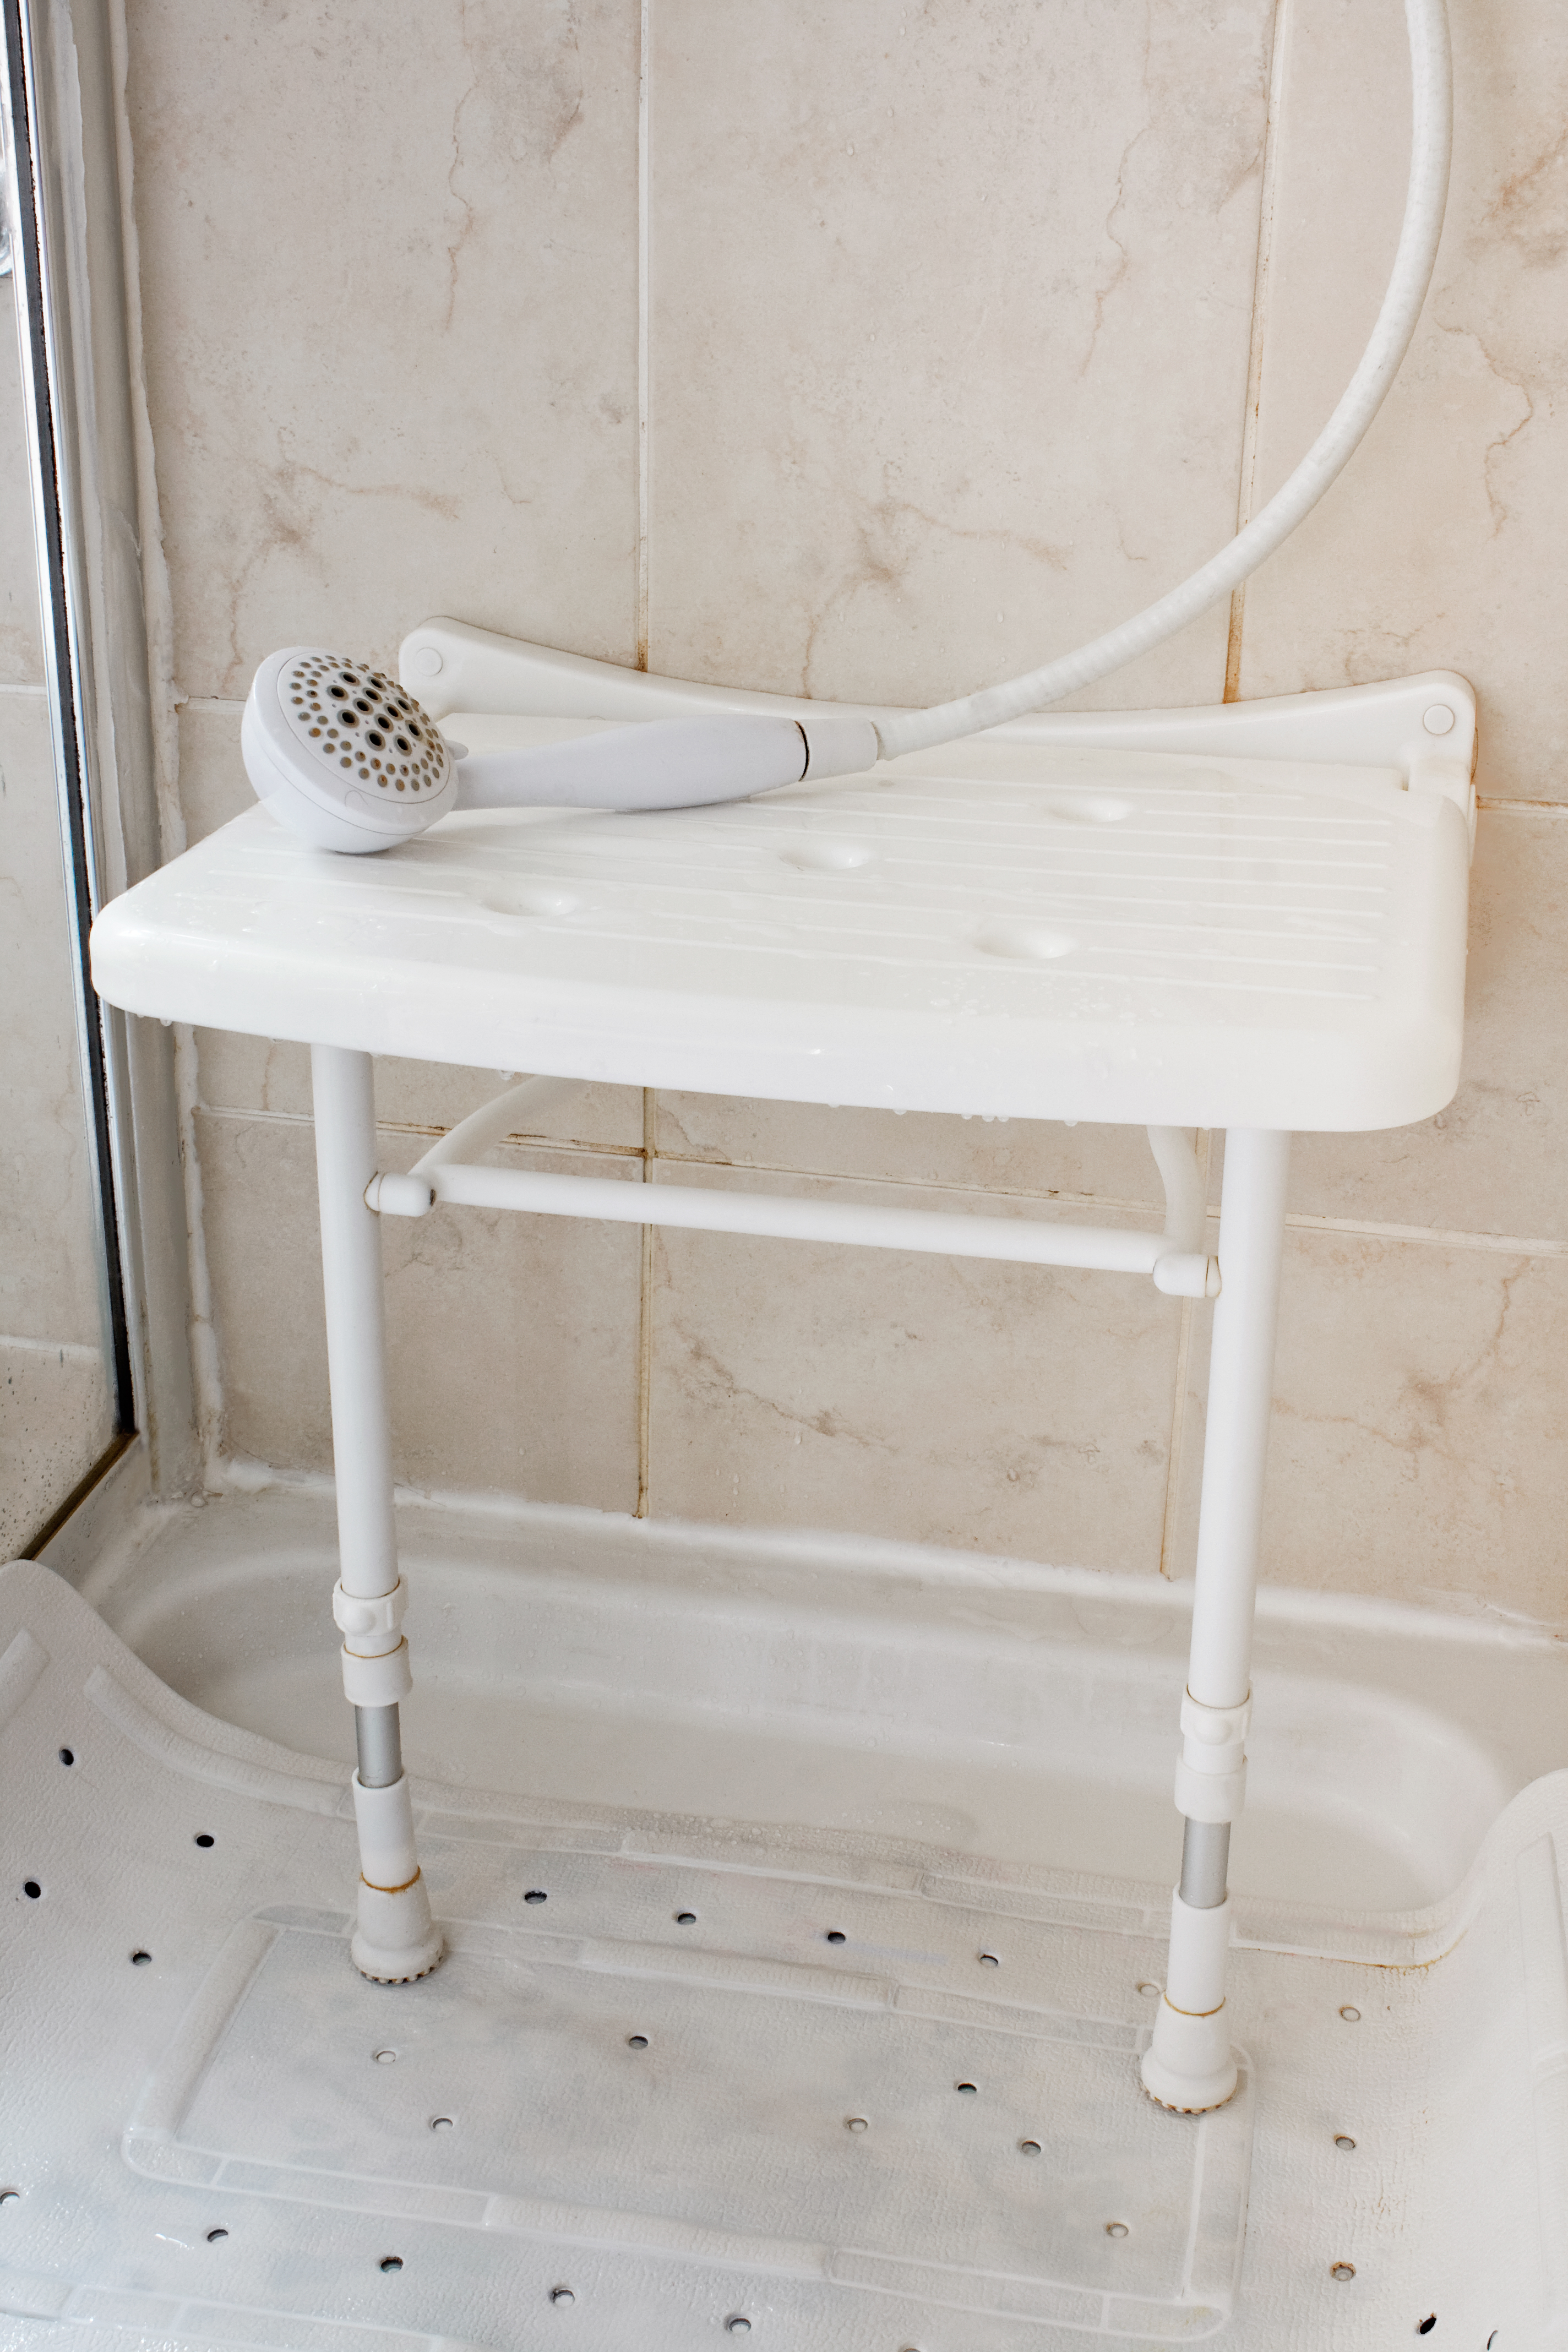 a plastic shower seat will allow you to sit down while you wash